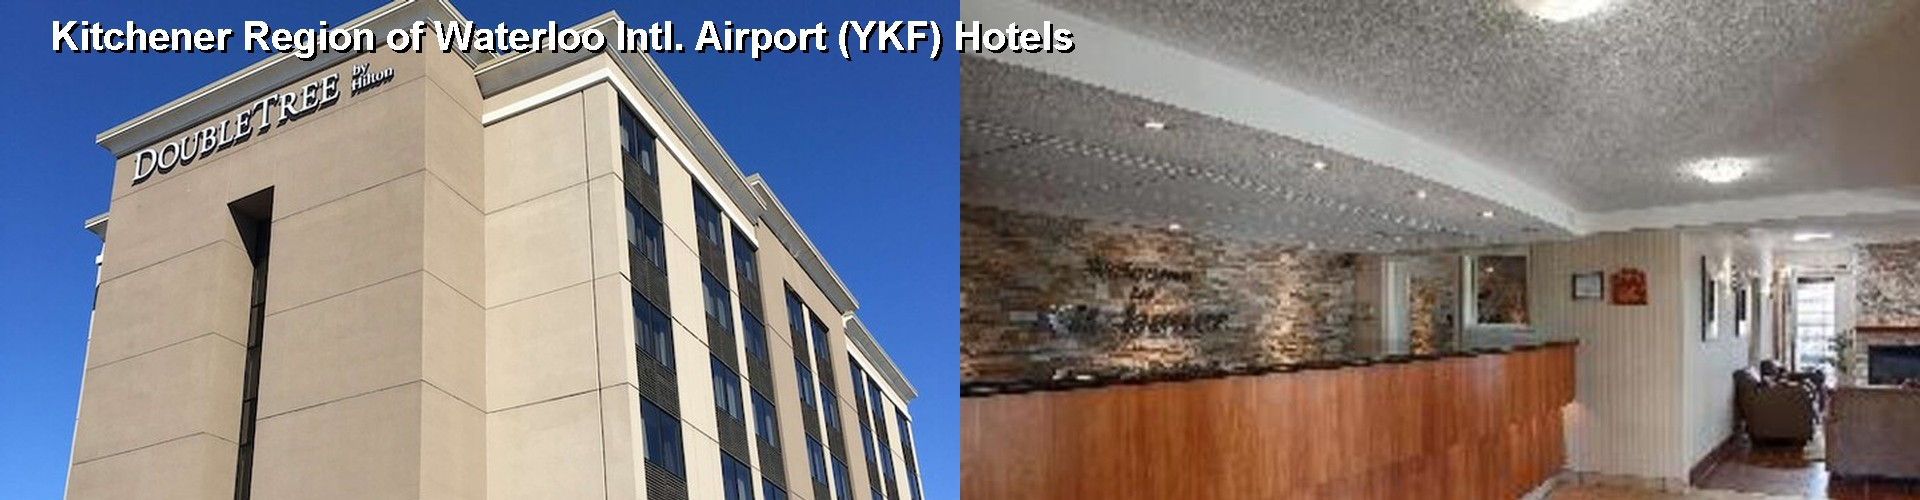 5 Best Hotels near Kitchener Region of Waterloo Intl. Airport (YKF)